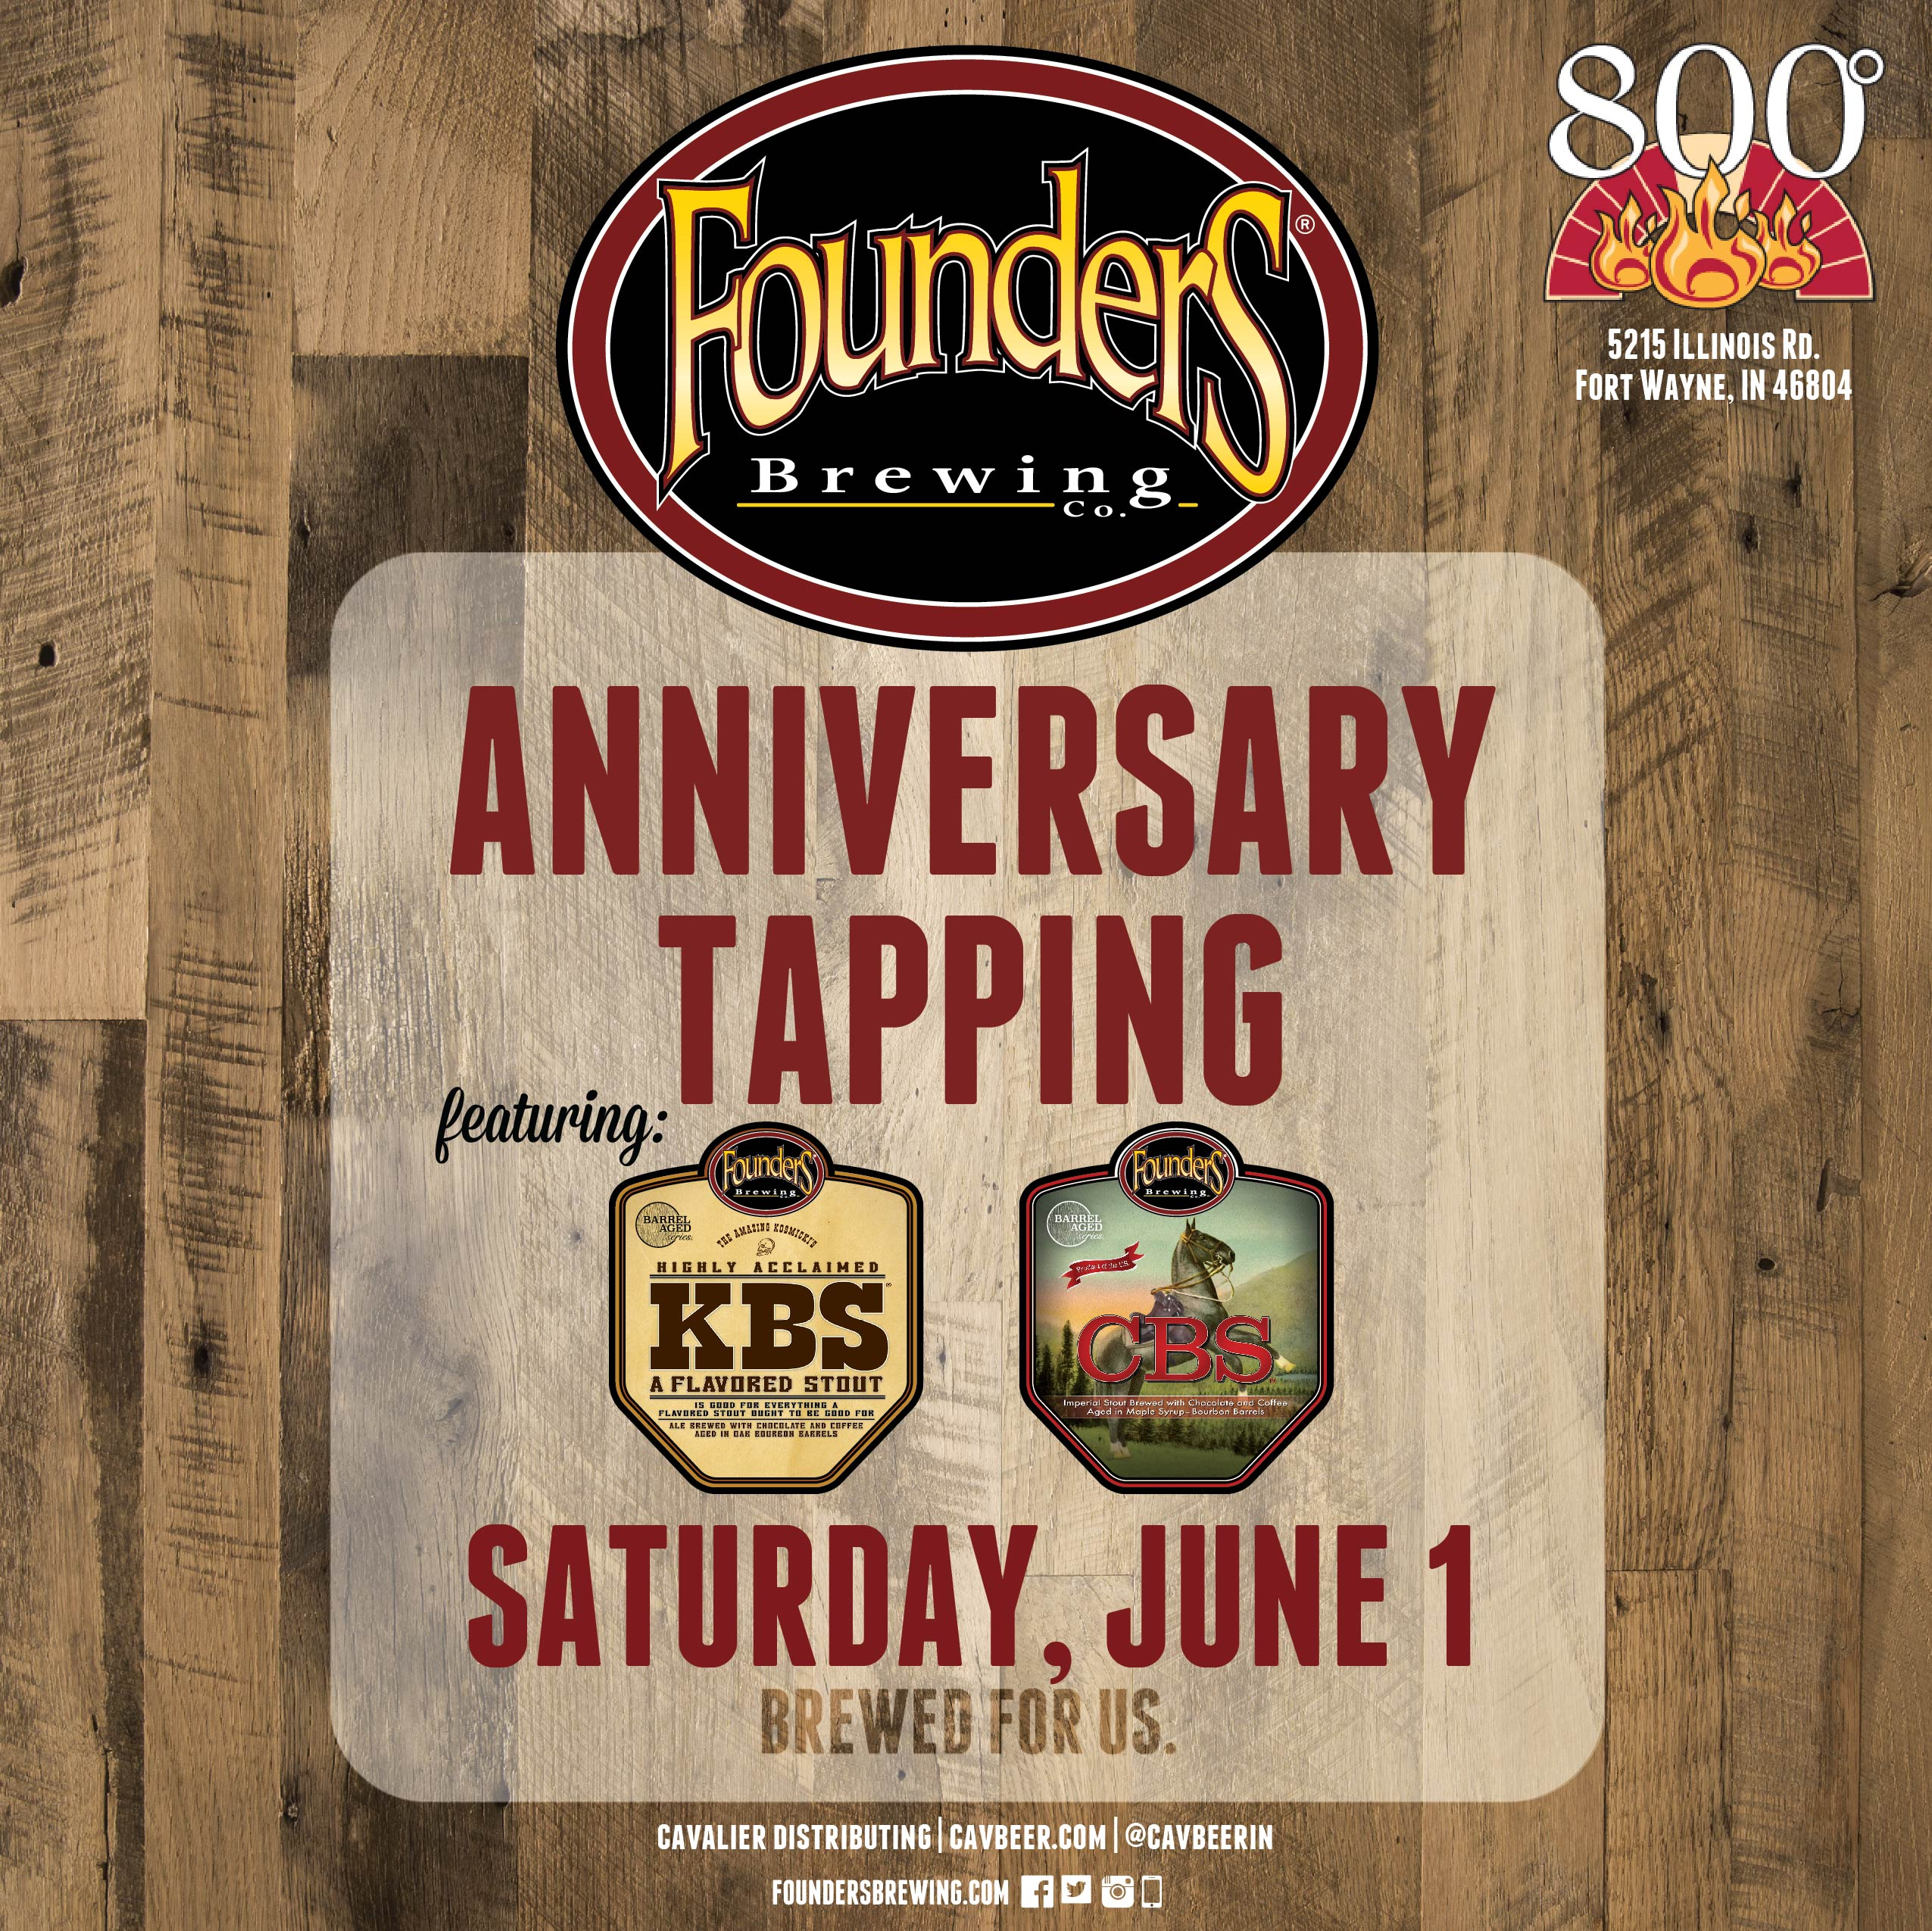 Founder's Anniversary Tapping @ 800 Degrees 3 Fires